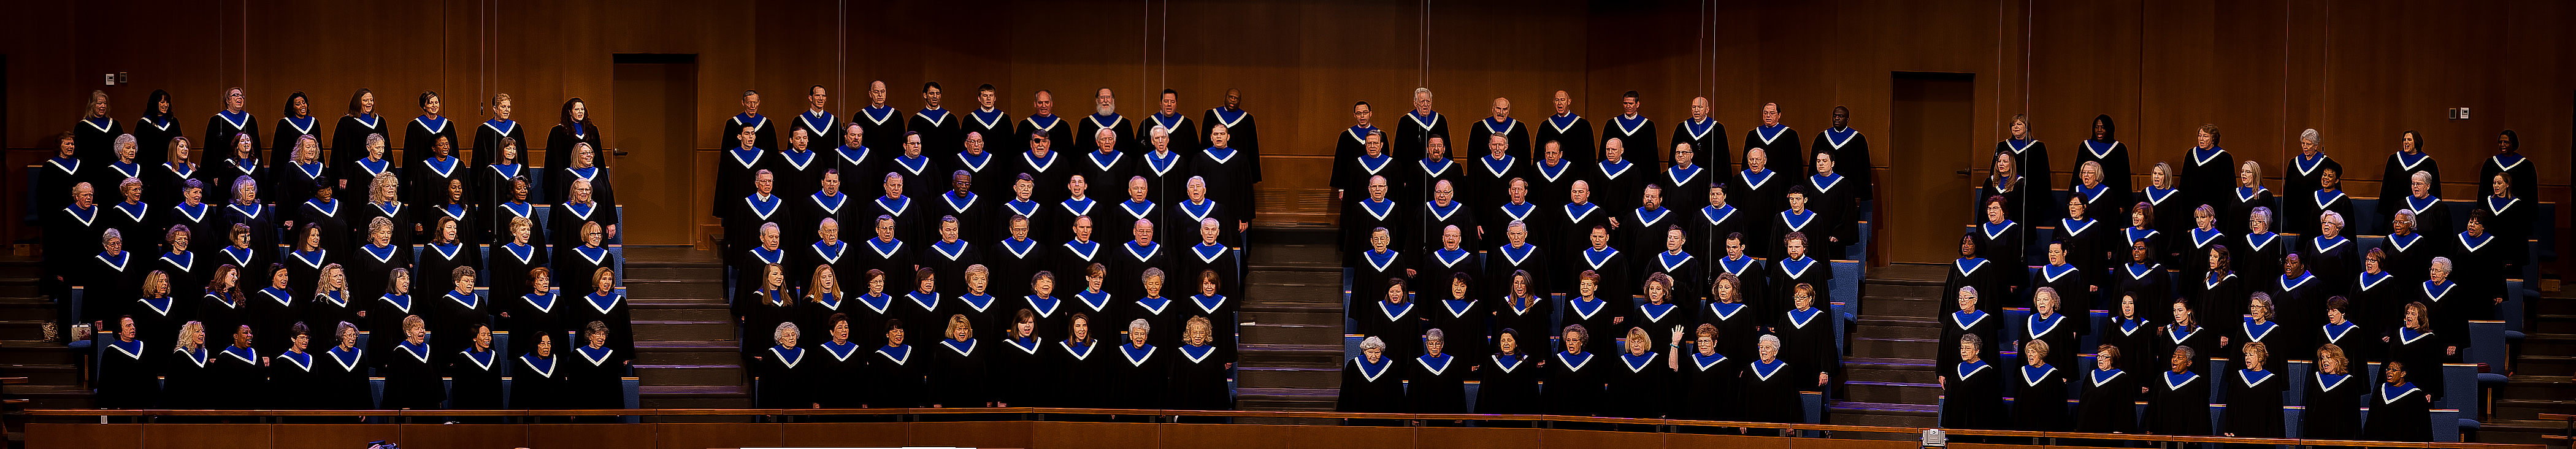 CHOIR PANORAMA